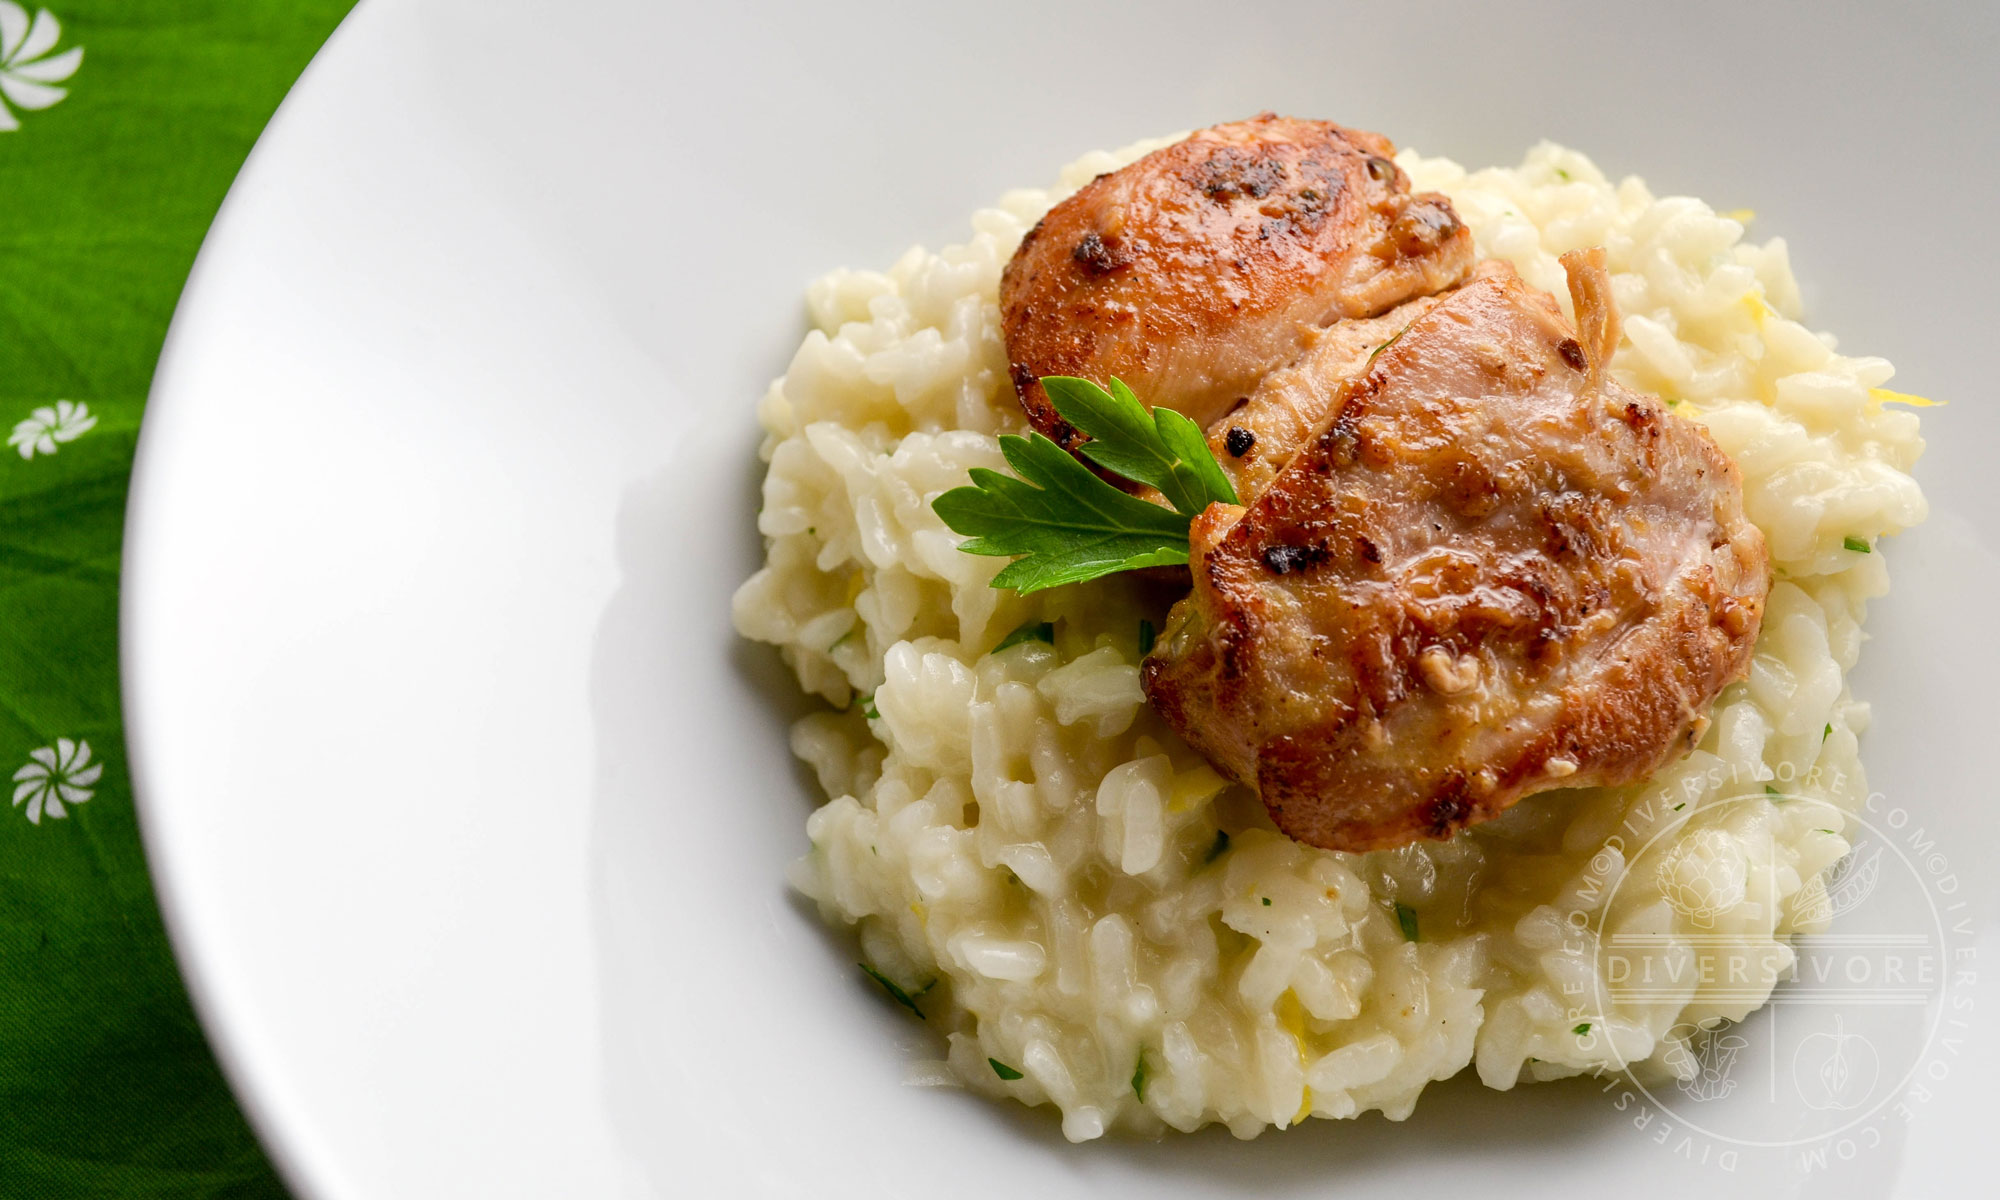 Ginger and karashi mustard chicken, shown here on a bed of Japanese lemon-herb risotto - Diversivore.com